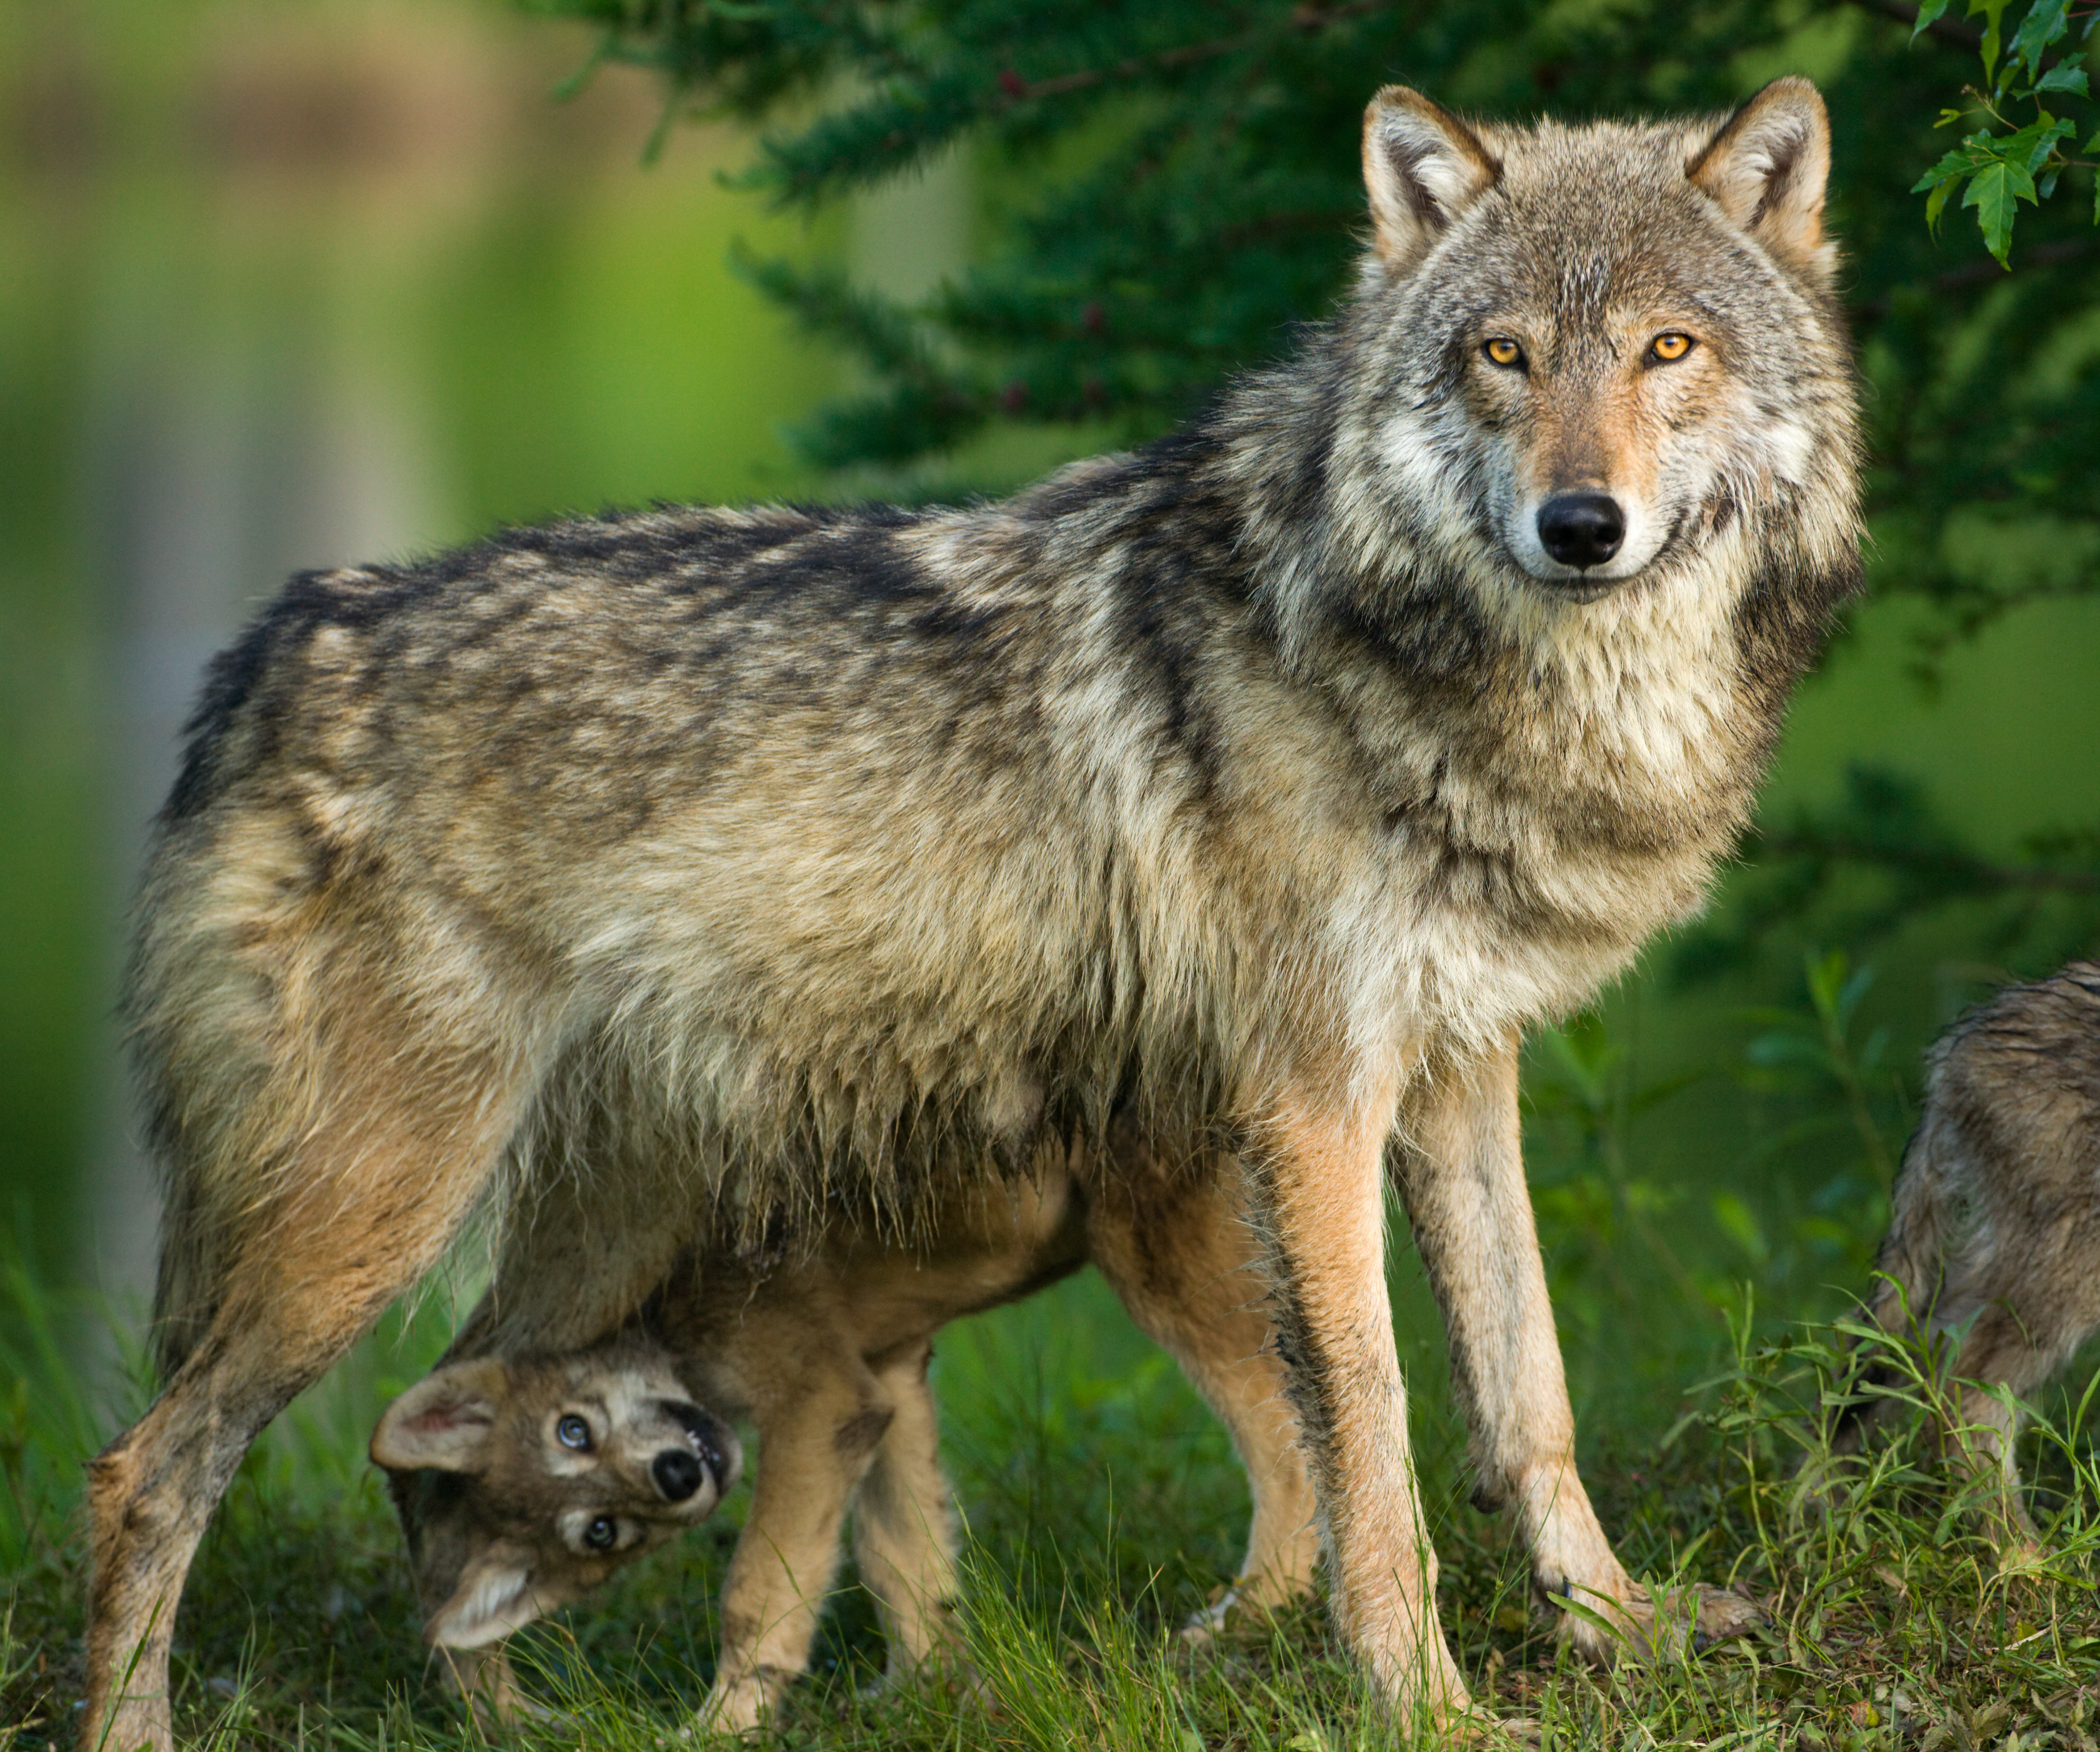 Trump's plan to take wolves off the endangered species list is deeply flawed